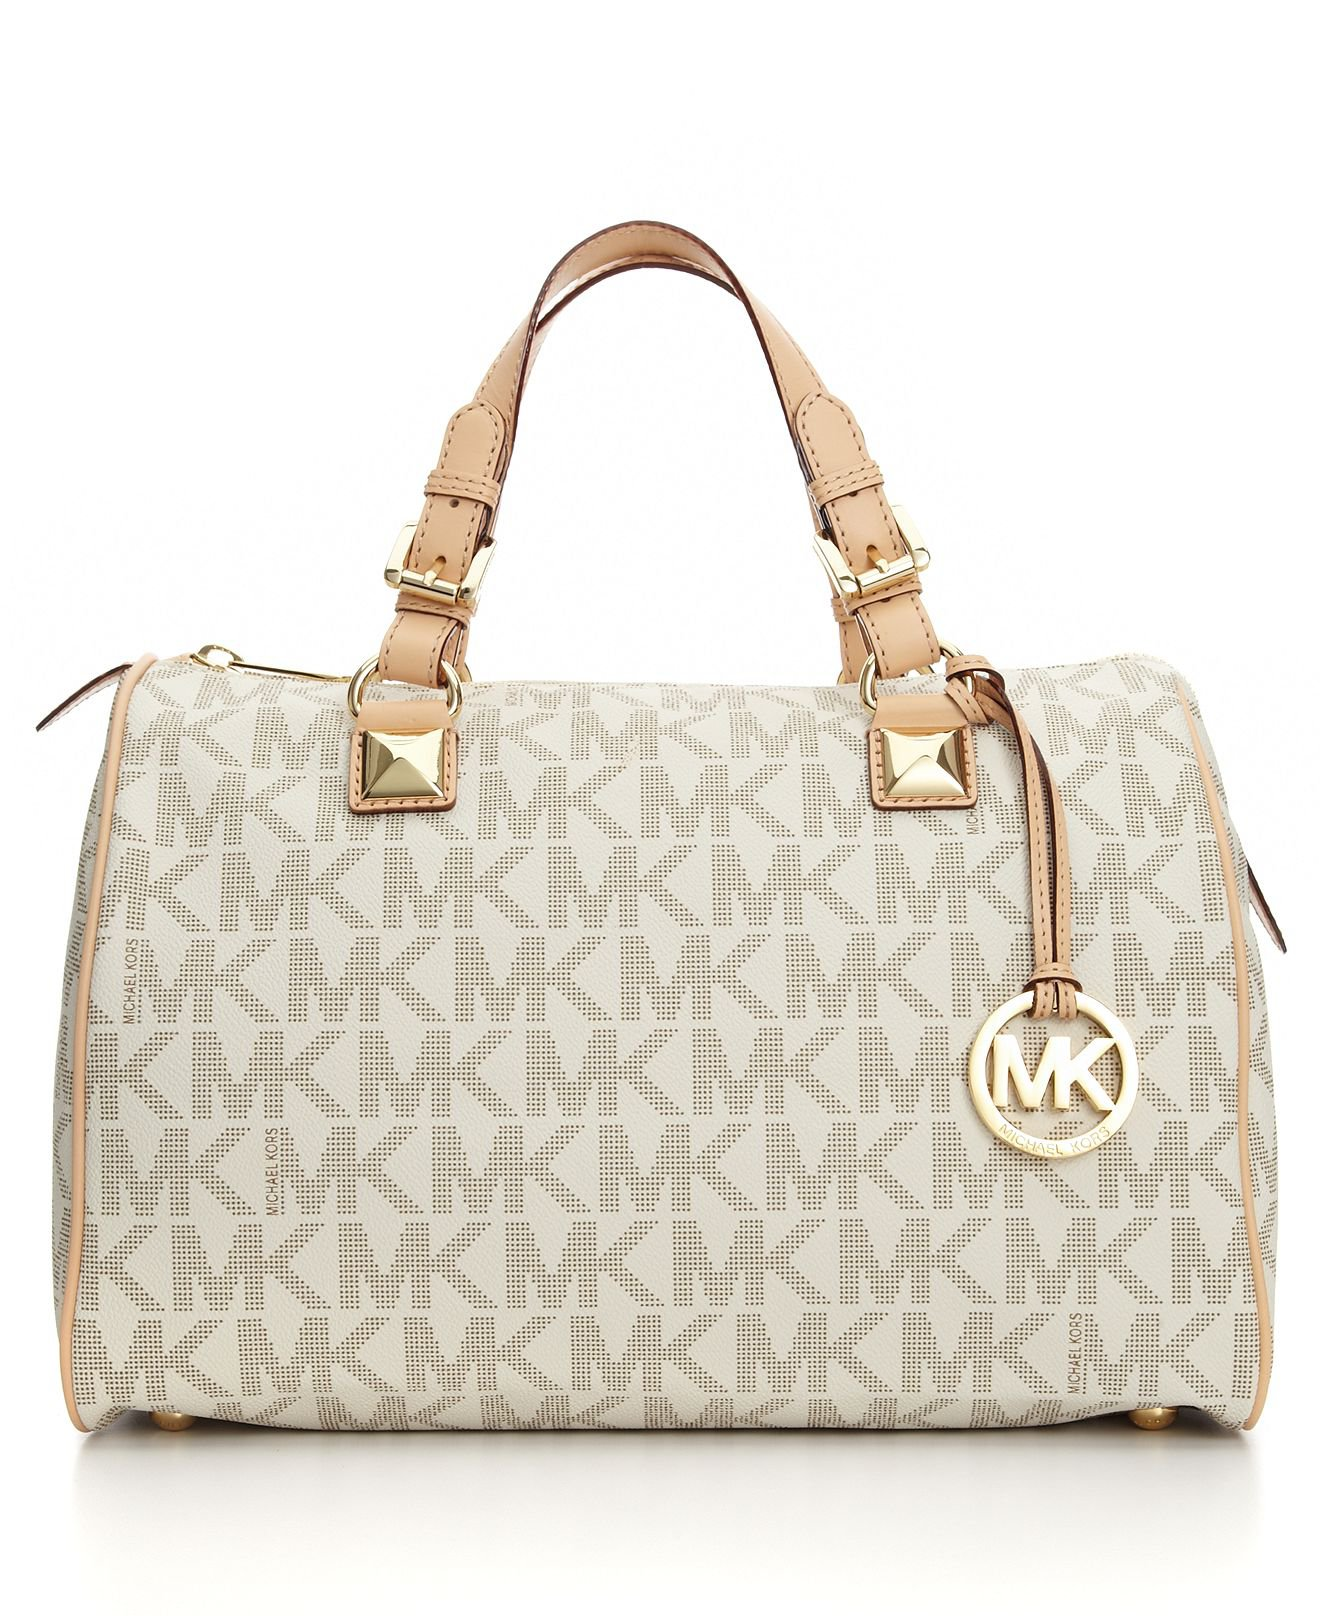 The empire of Michael Kors doesn't just stop with Michael Kors Leather Bags and Michael Kors Studded Bags. Michael Kors Backpacks are popular and desired across the globe. Fitting ever category from cute, edgy, flirty, and so much more. There are only countless backpacks to choose from.